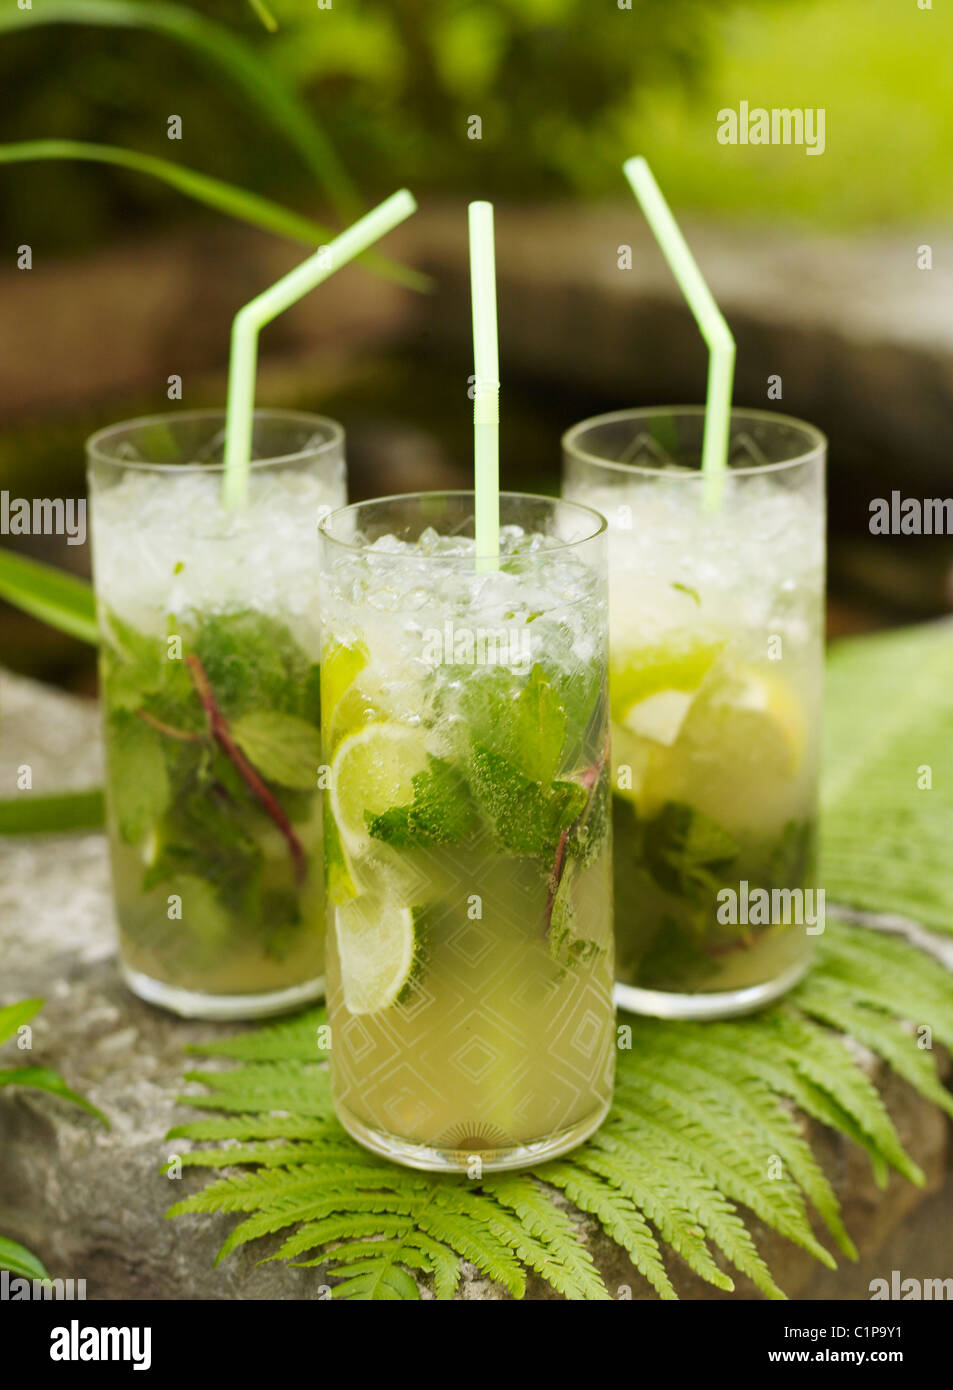 Three mojito cocktails on fern - Stock Image